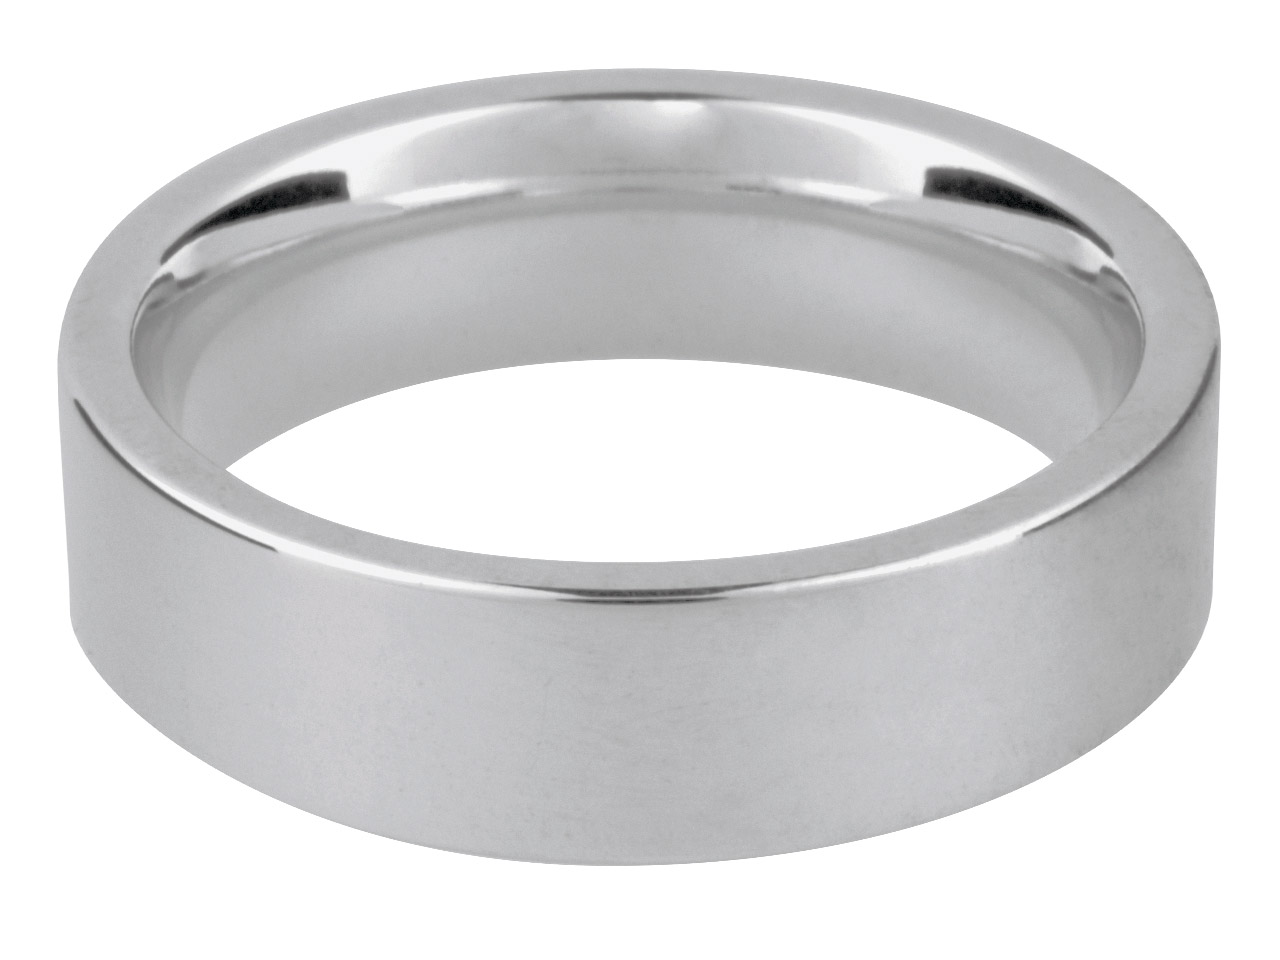 Palladium Easy Fit Wedding Ring    4.0mm L 5.1gms Heavy Weight        Hallmarked Wall Thickness 1.92mm